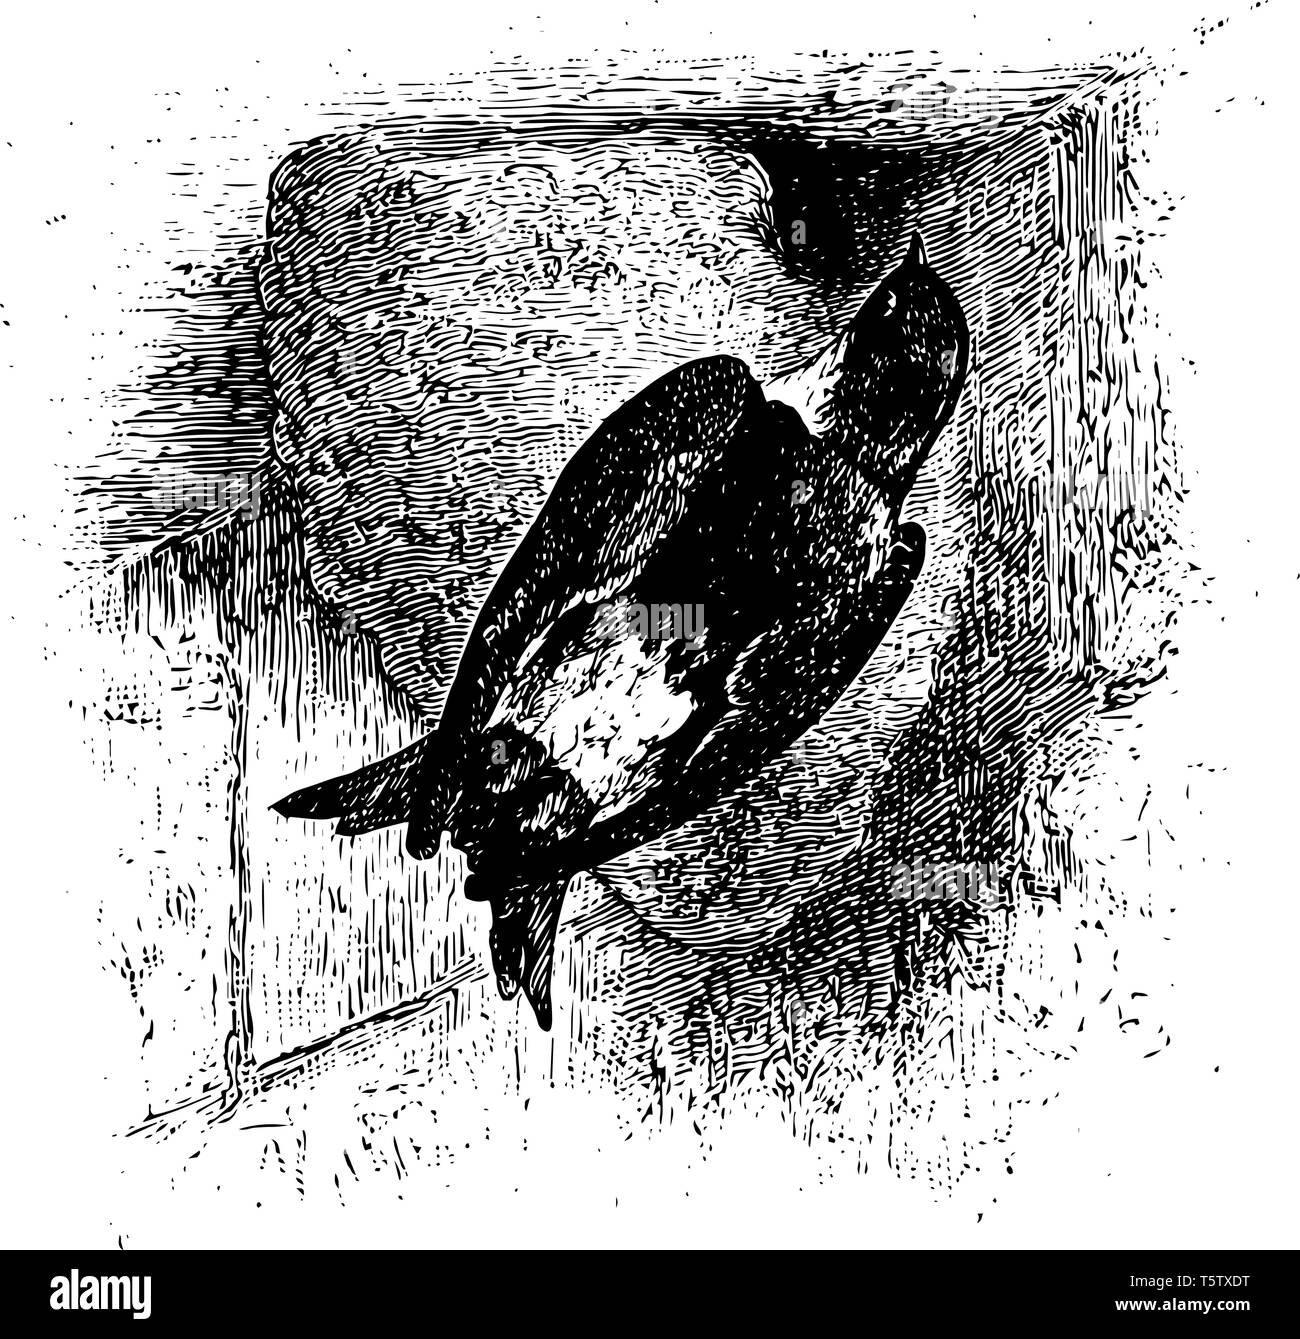 House Martin is a migratory passerine bird of the swallow family vintage line drawing or engraving illustration. - Stock Vector